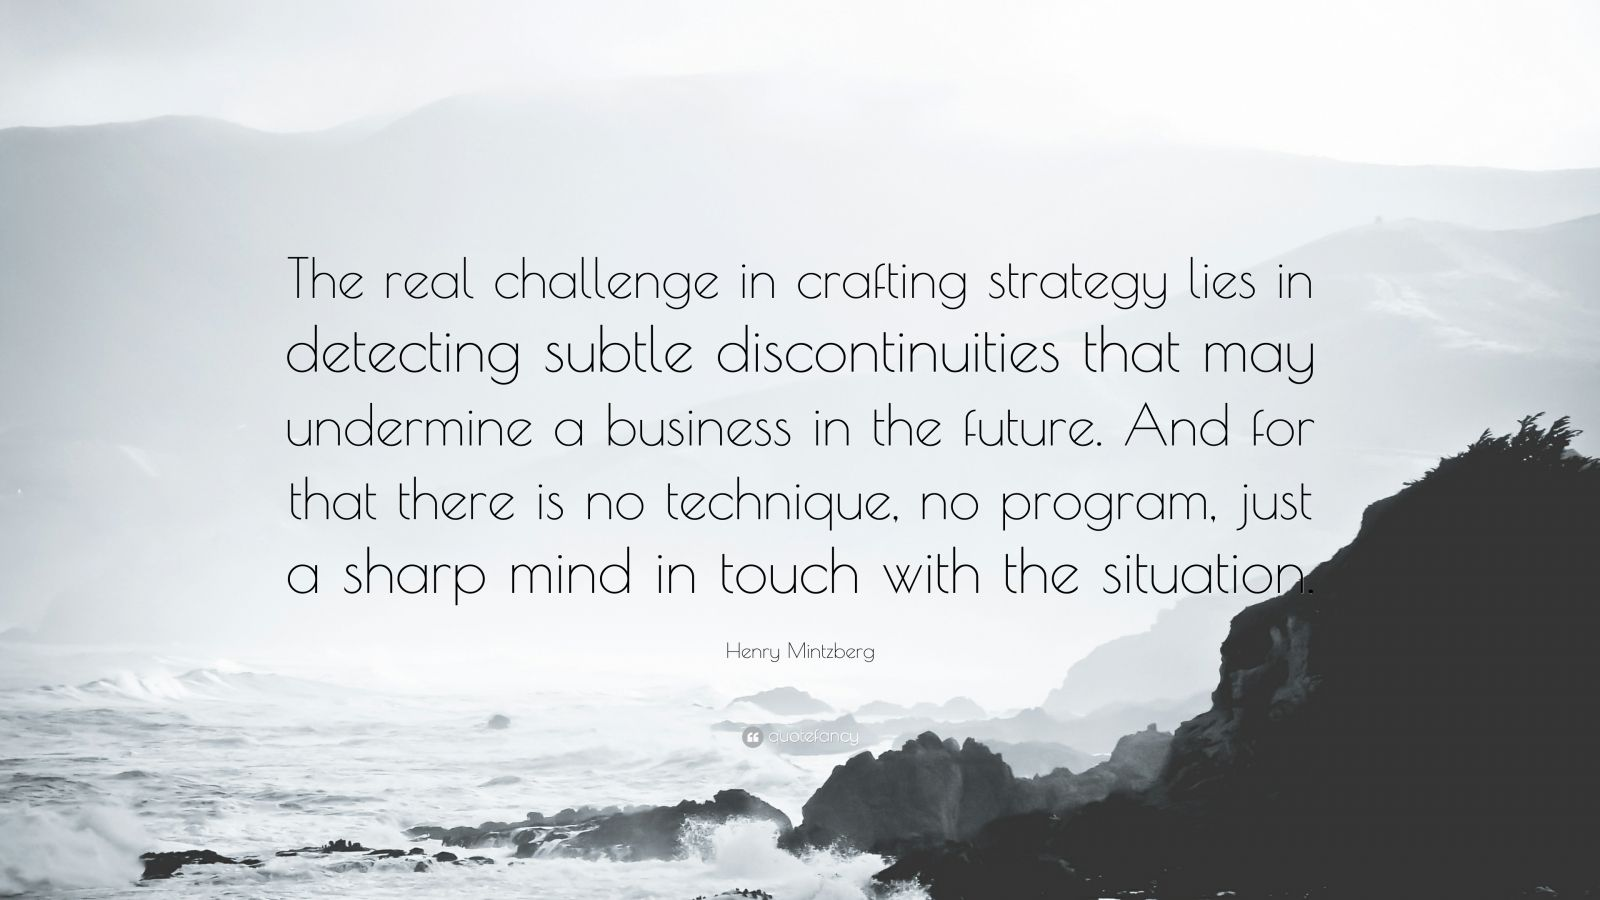 crafting strategy by mintzberg